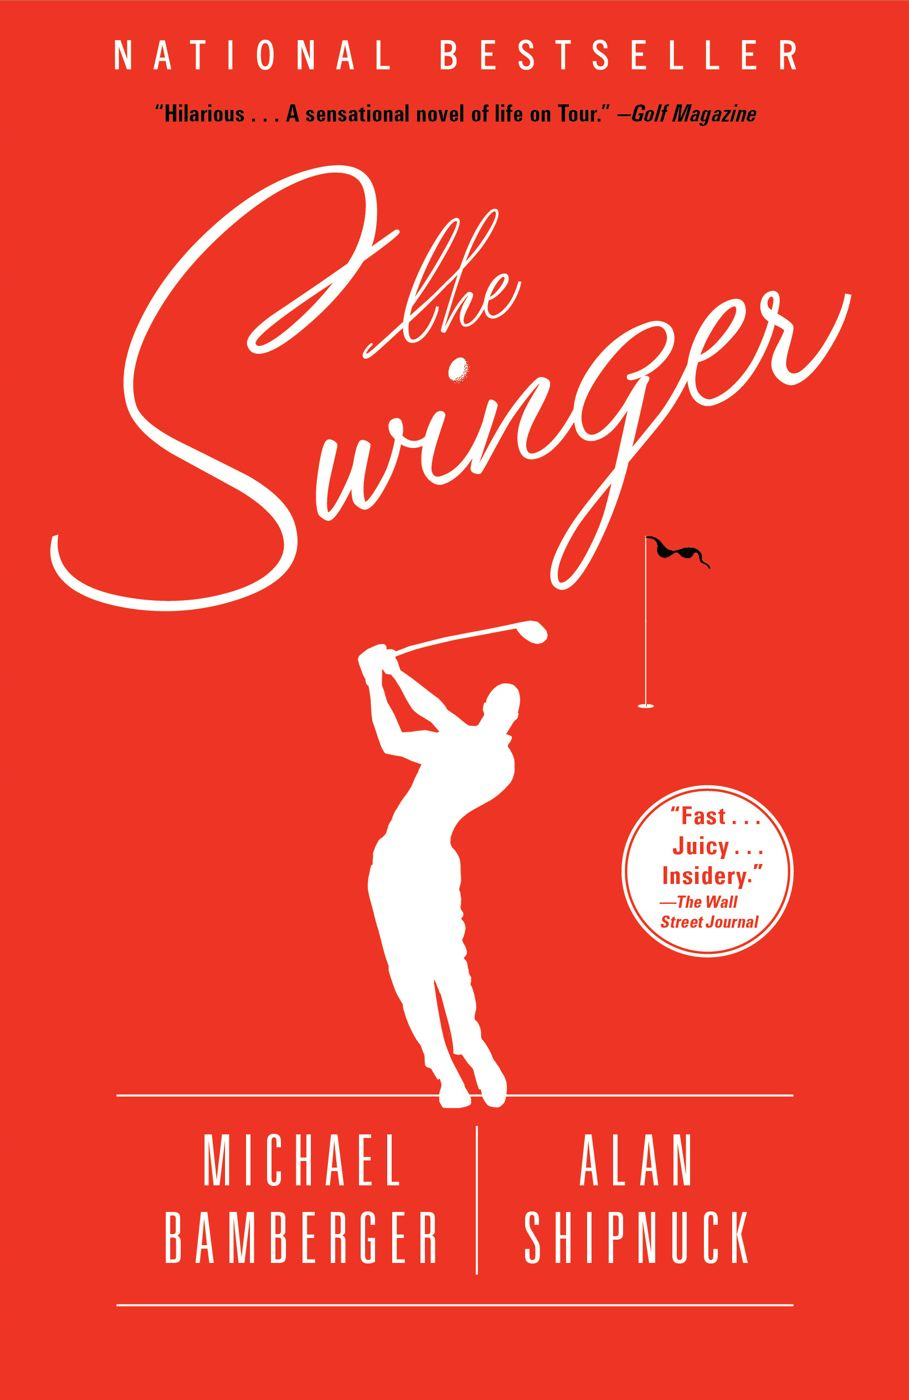 The Swinger By: Alan Shipnuck,Michael Bamberger